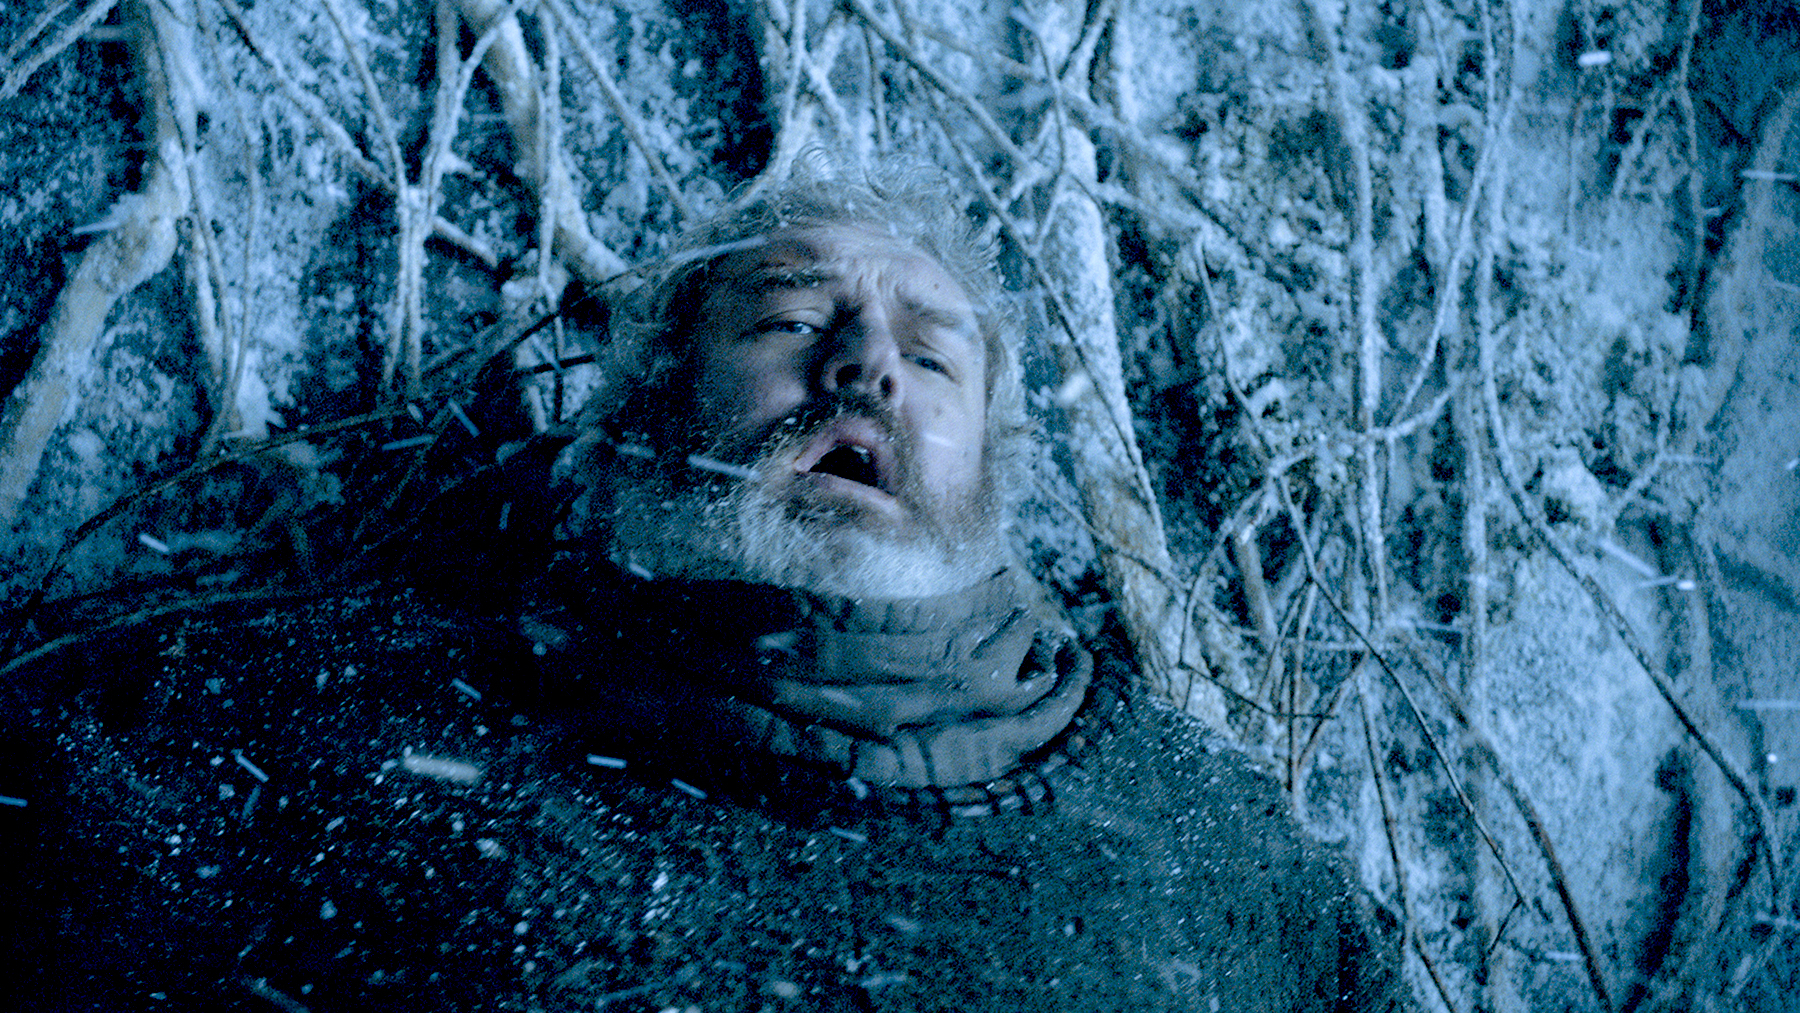 Hodor on 'Game of Thrones'